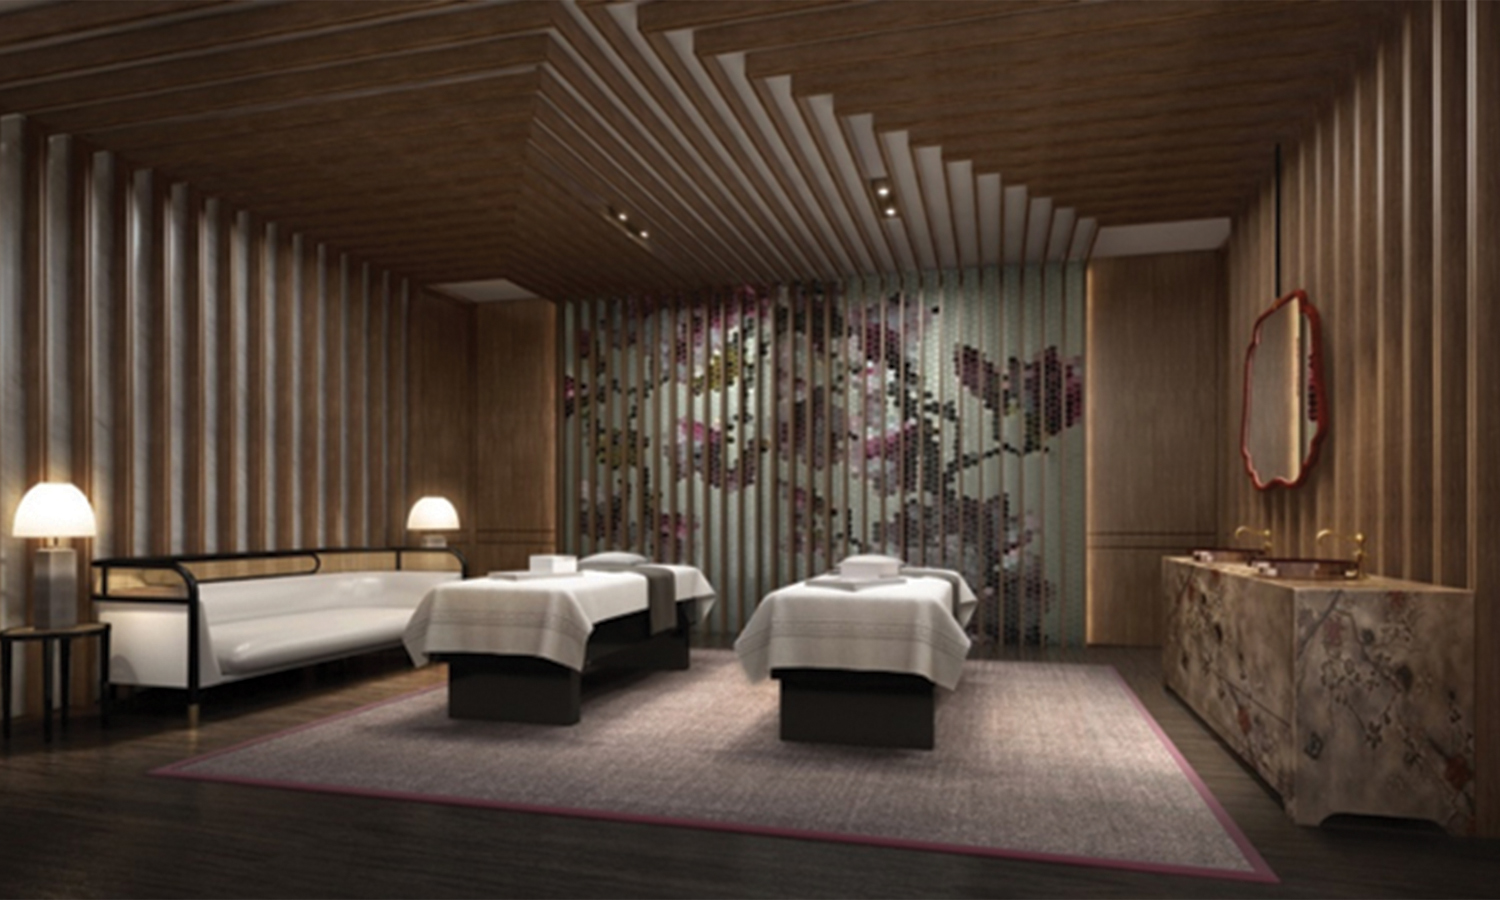 The Spa at Park Hyatt Suzhou